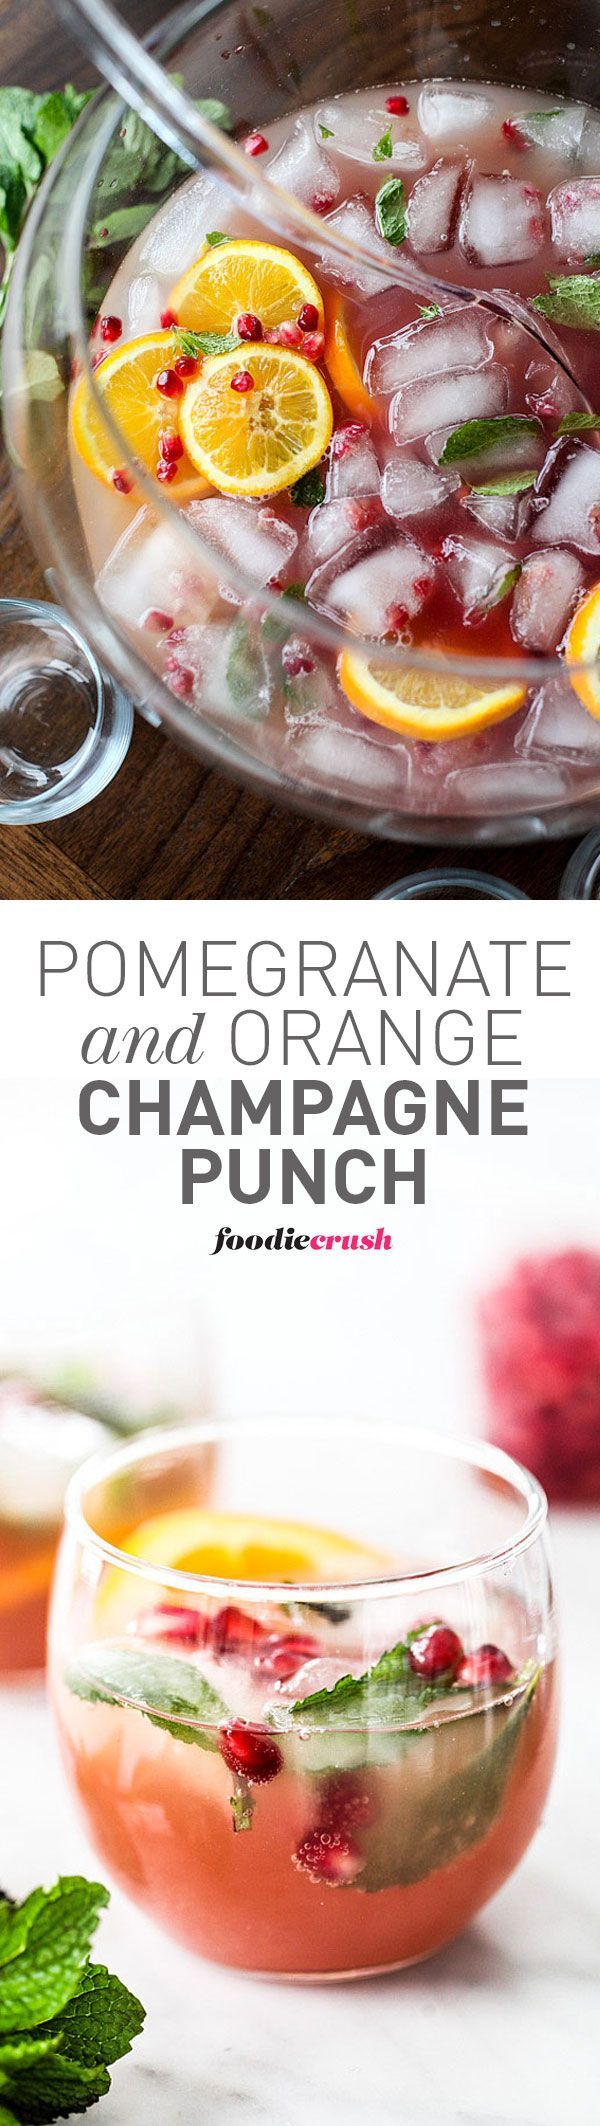 Prosecco or champagne make this easy punch recipe for a crowd extra bubbly   foodiecrush.com